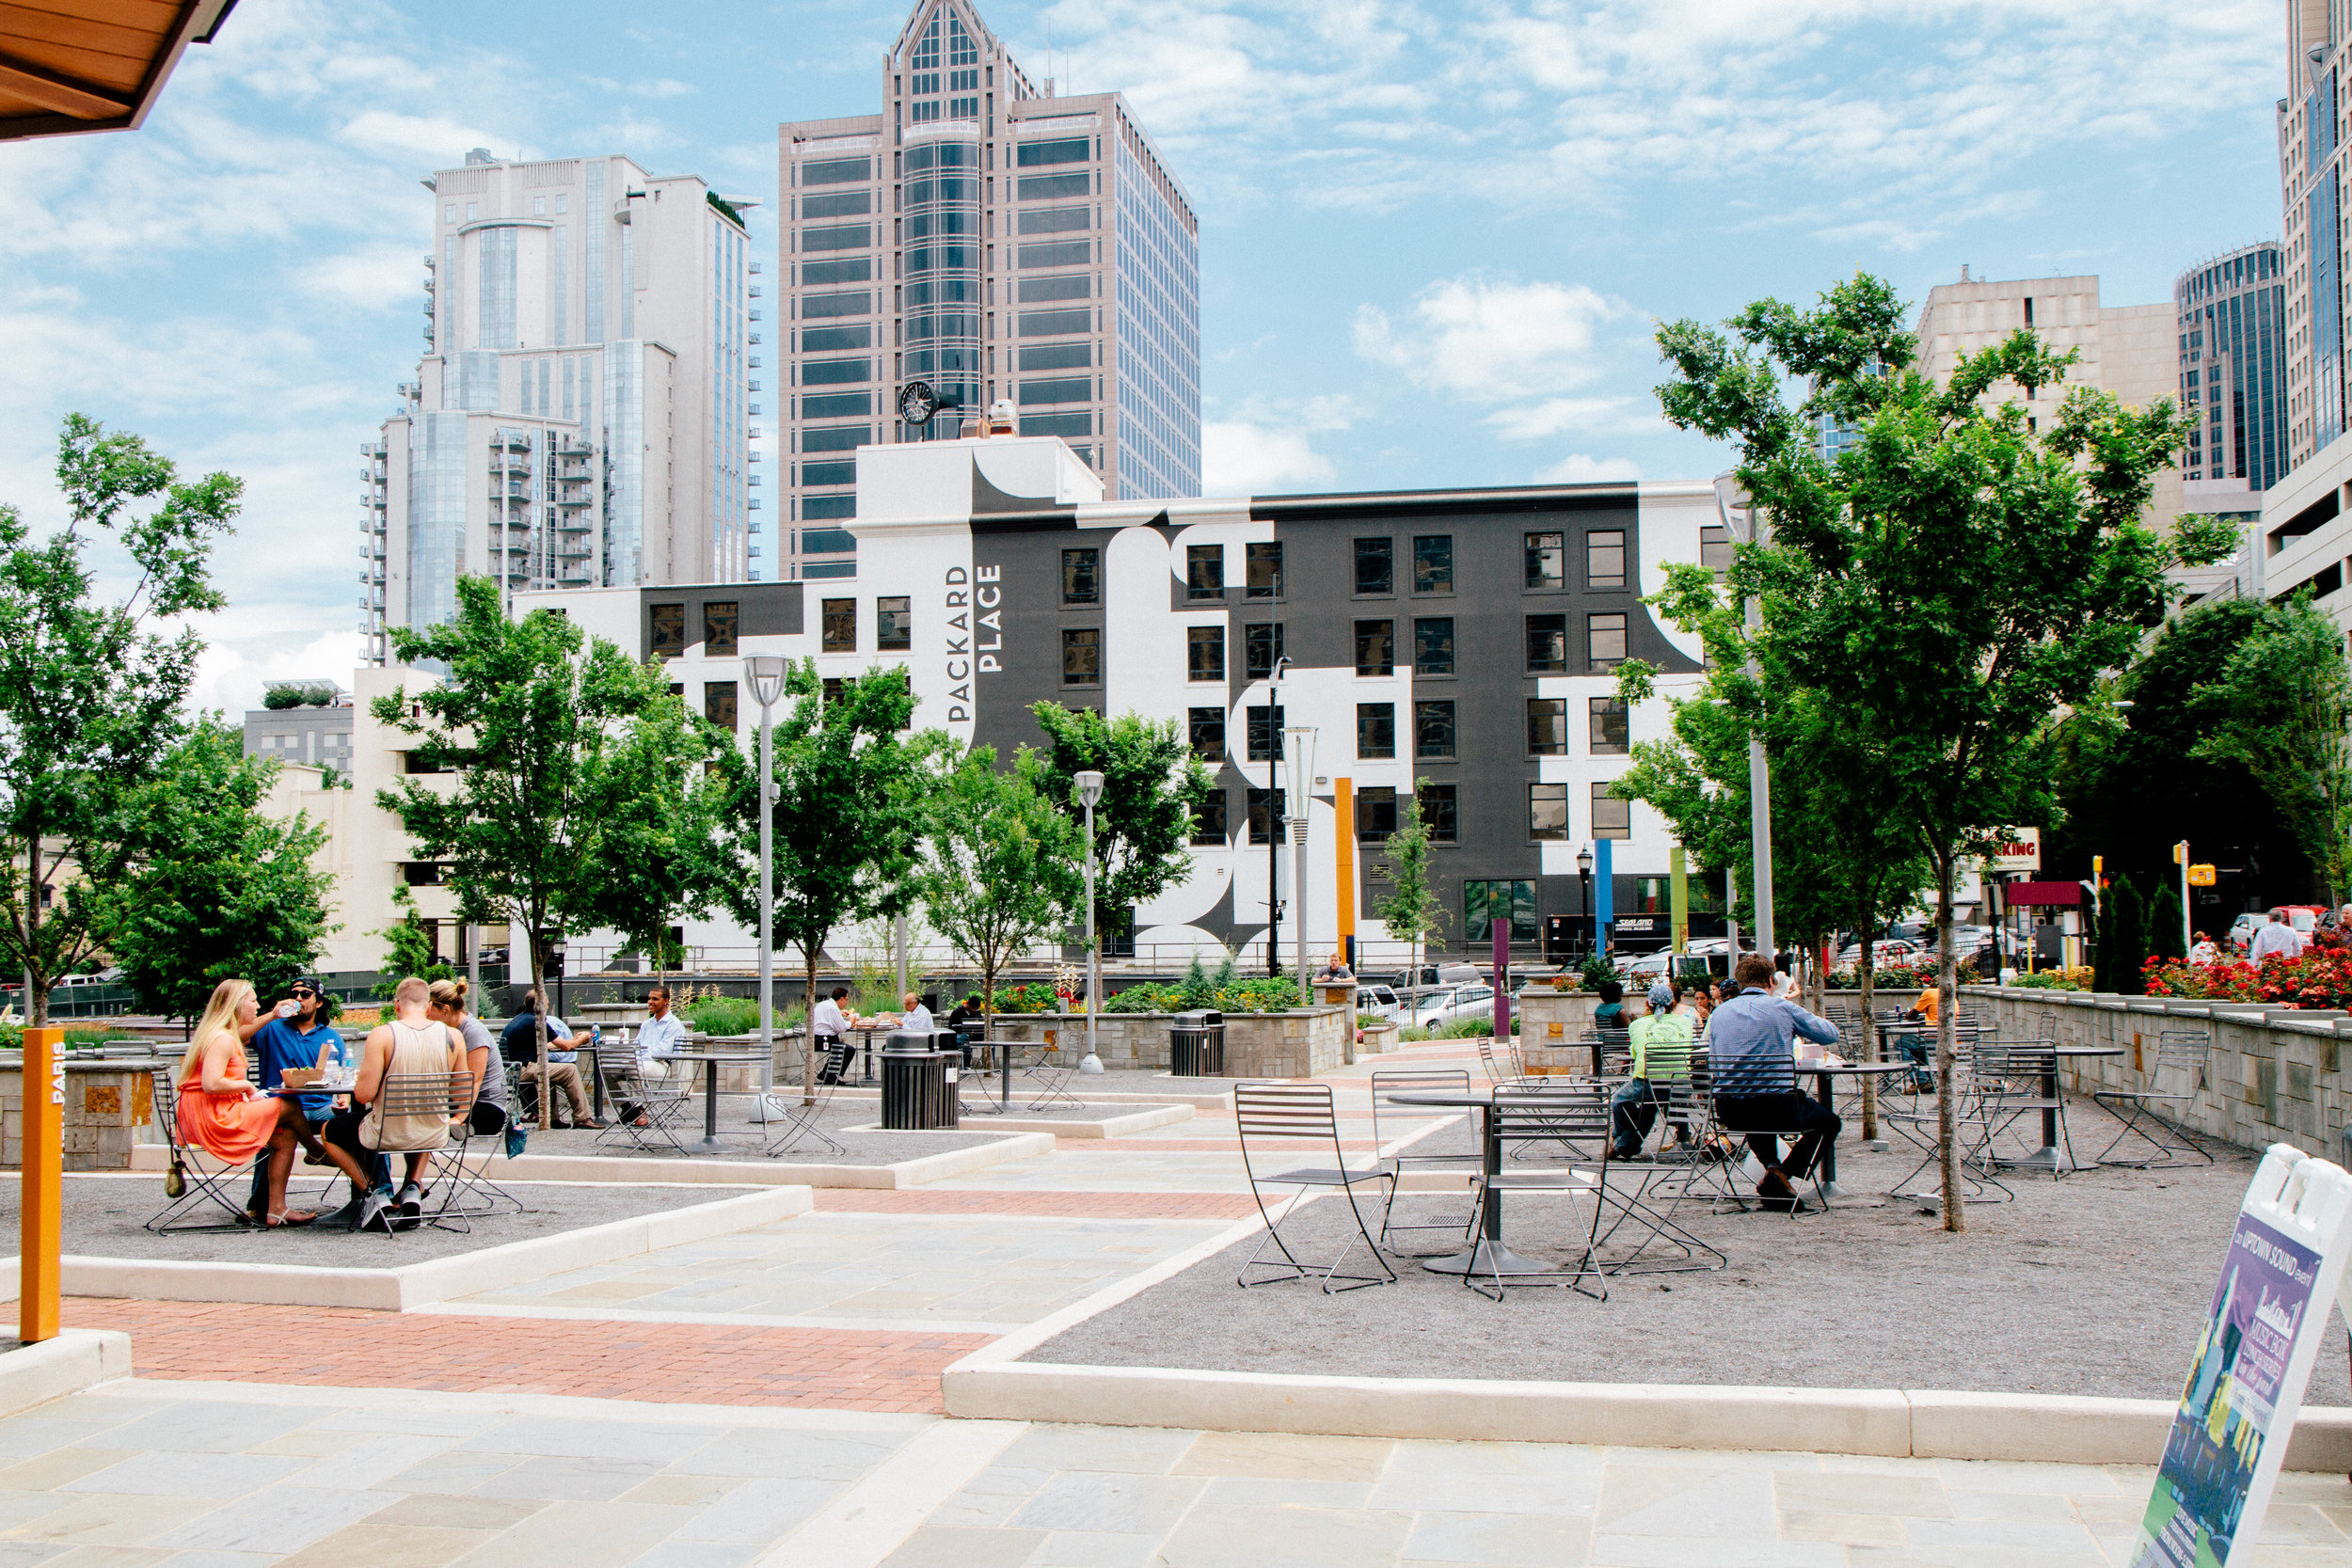 Packard Place<a href=packard-place-hq-charlotte>→</a><strong>90,000 sqft Multipurpose Space</strong>